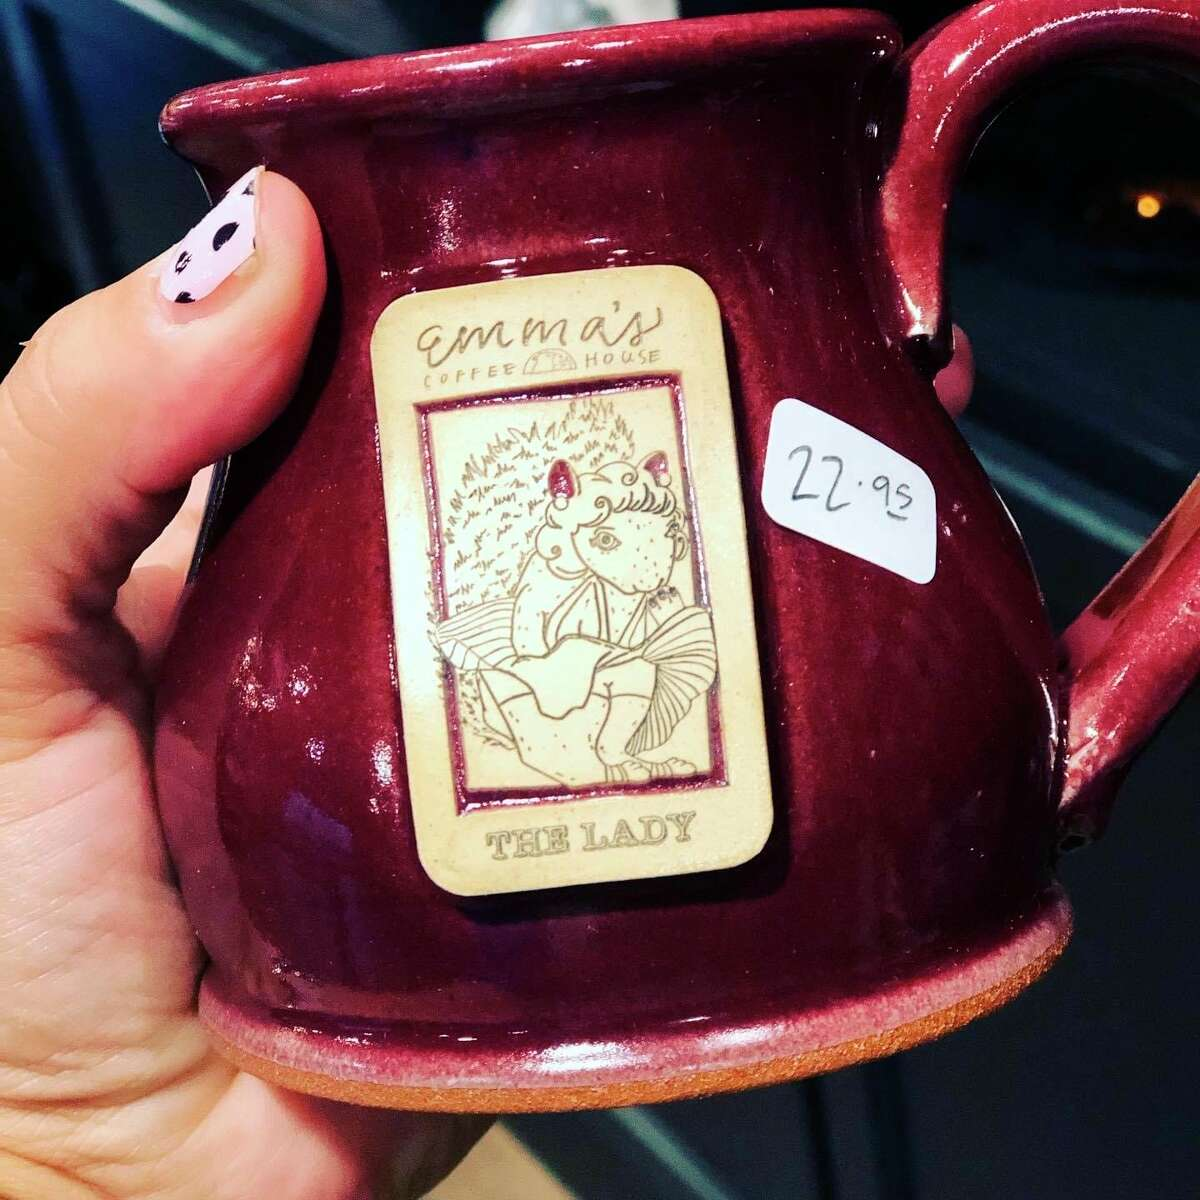 Artist and co-owner of Emma's Coffee House, Jessi Severance, has released a new series of mugs depicting a humorous line of